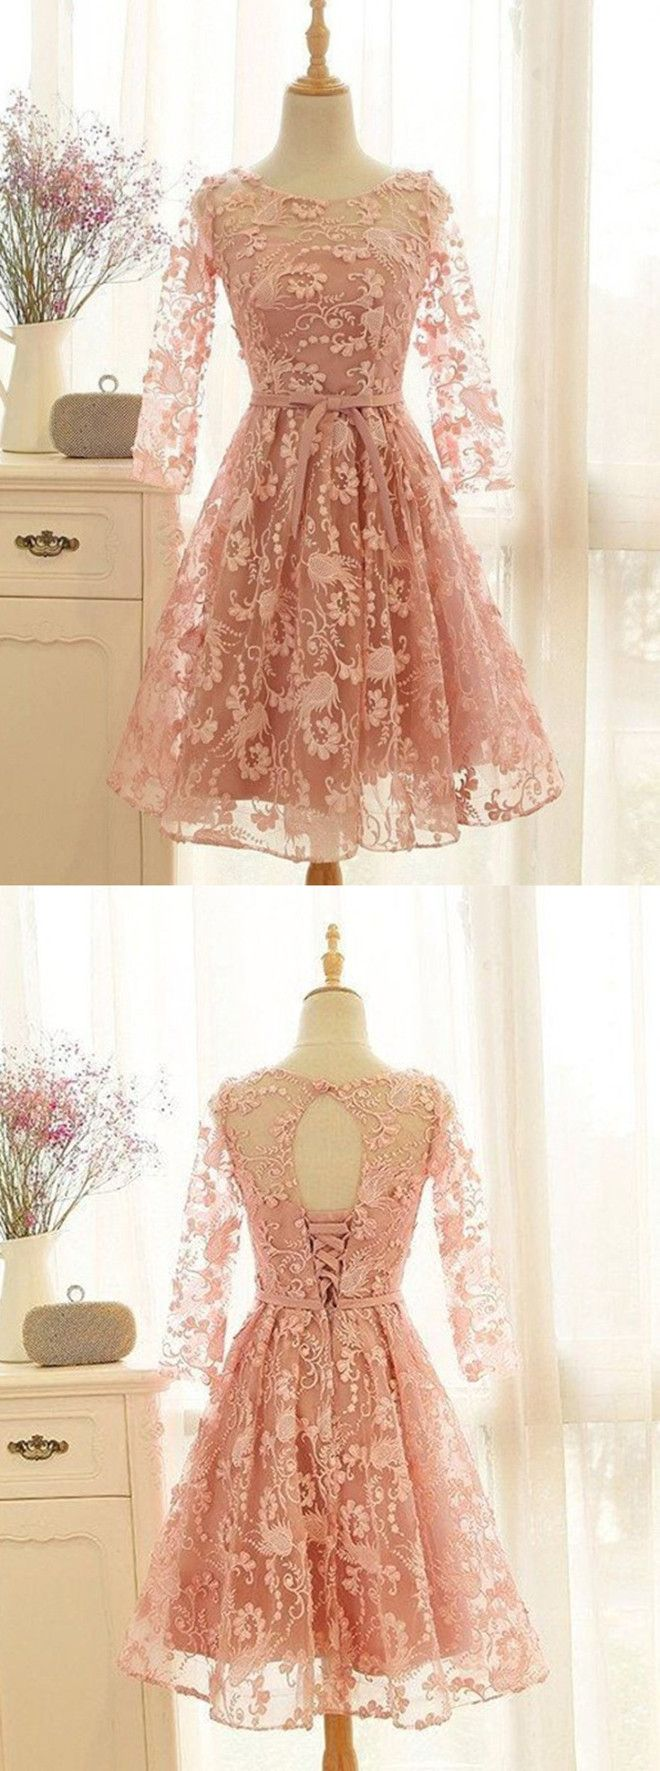 Aline crew kneelength sleeves open back laceup pink lace